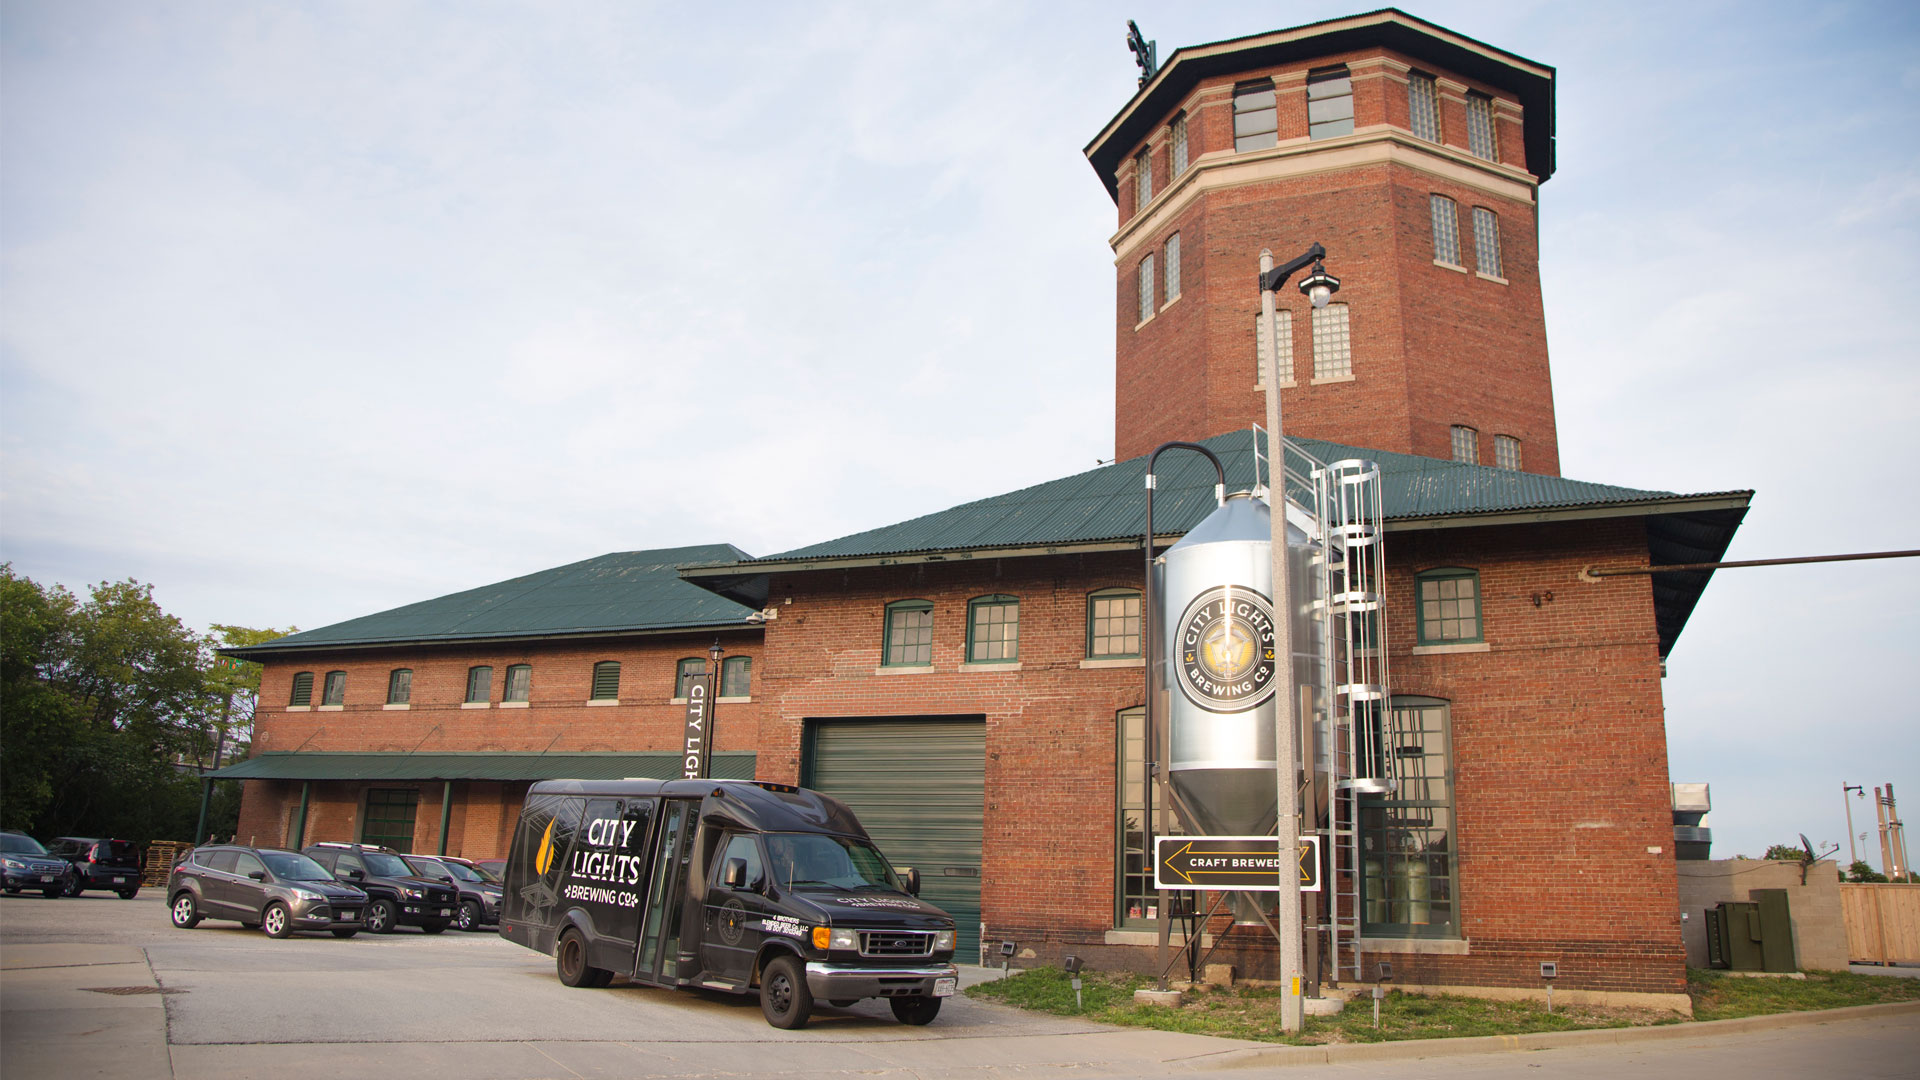 City Lights Brewing Company